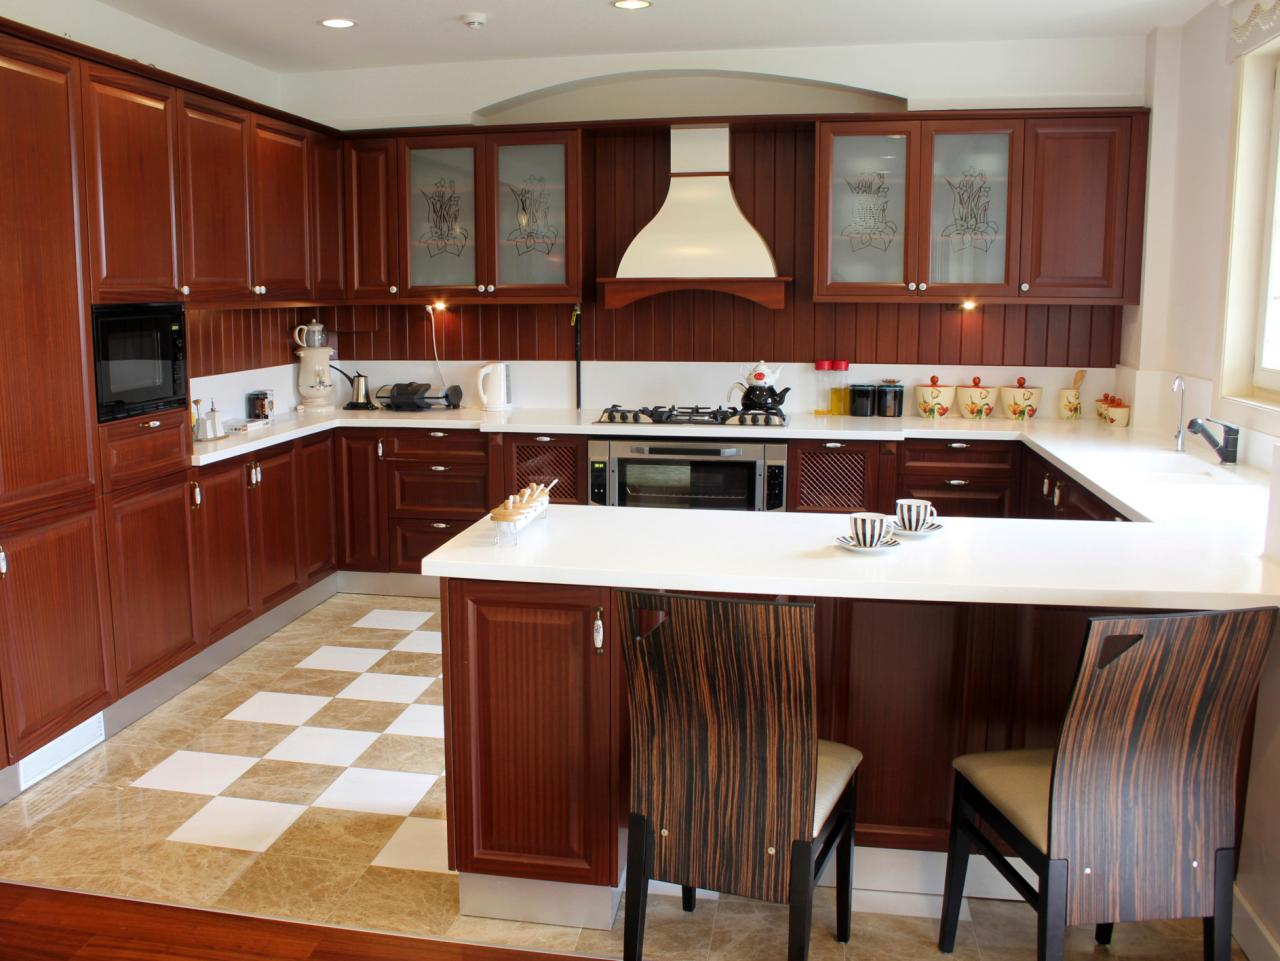 u shaped kitchen layout with island u-shaped kitchens MLJKRHG